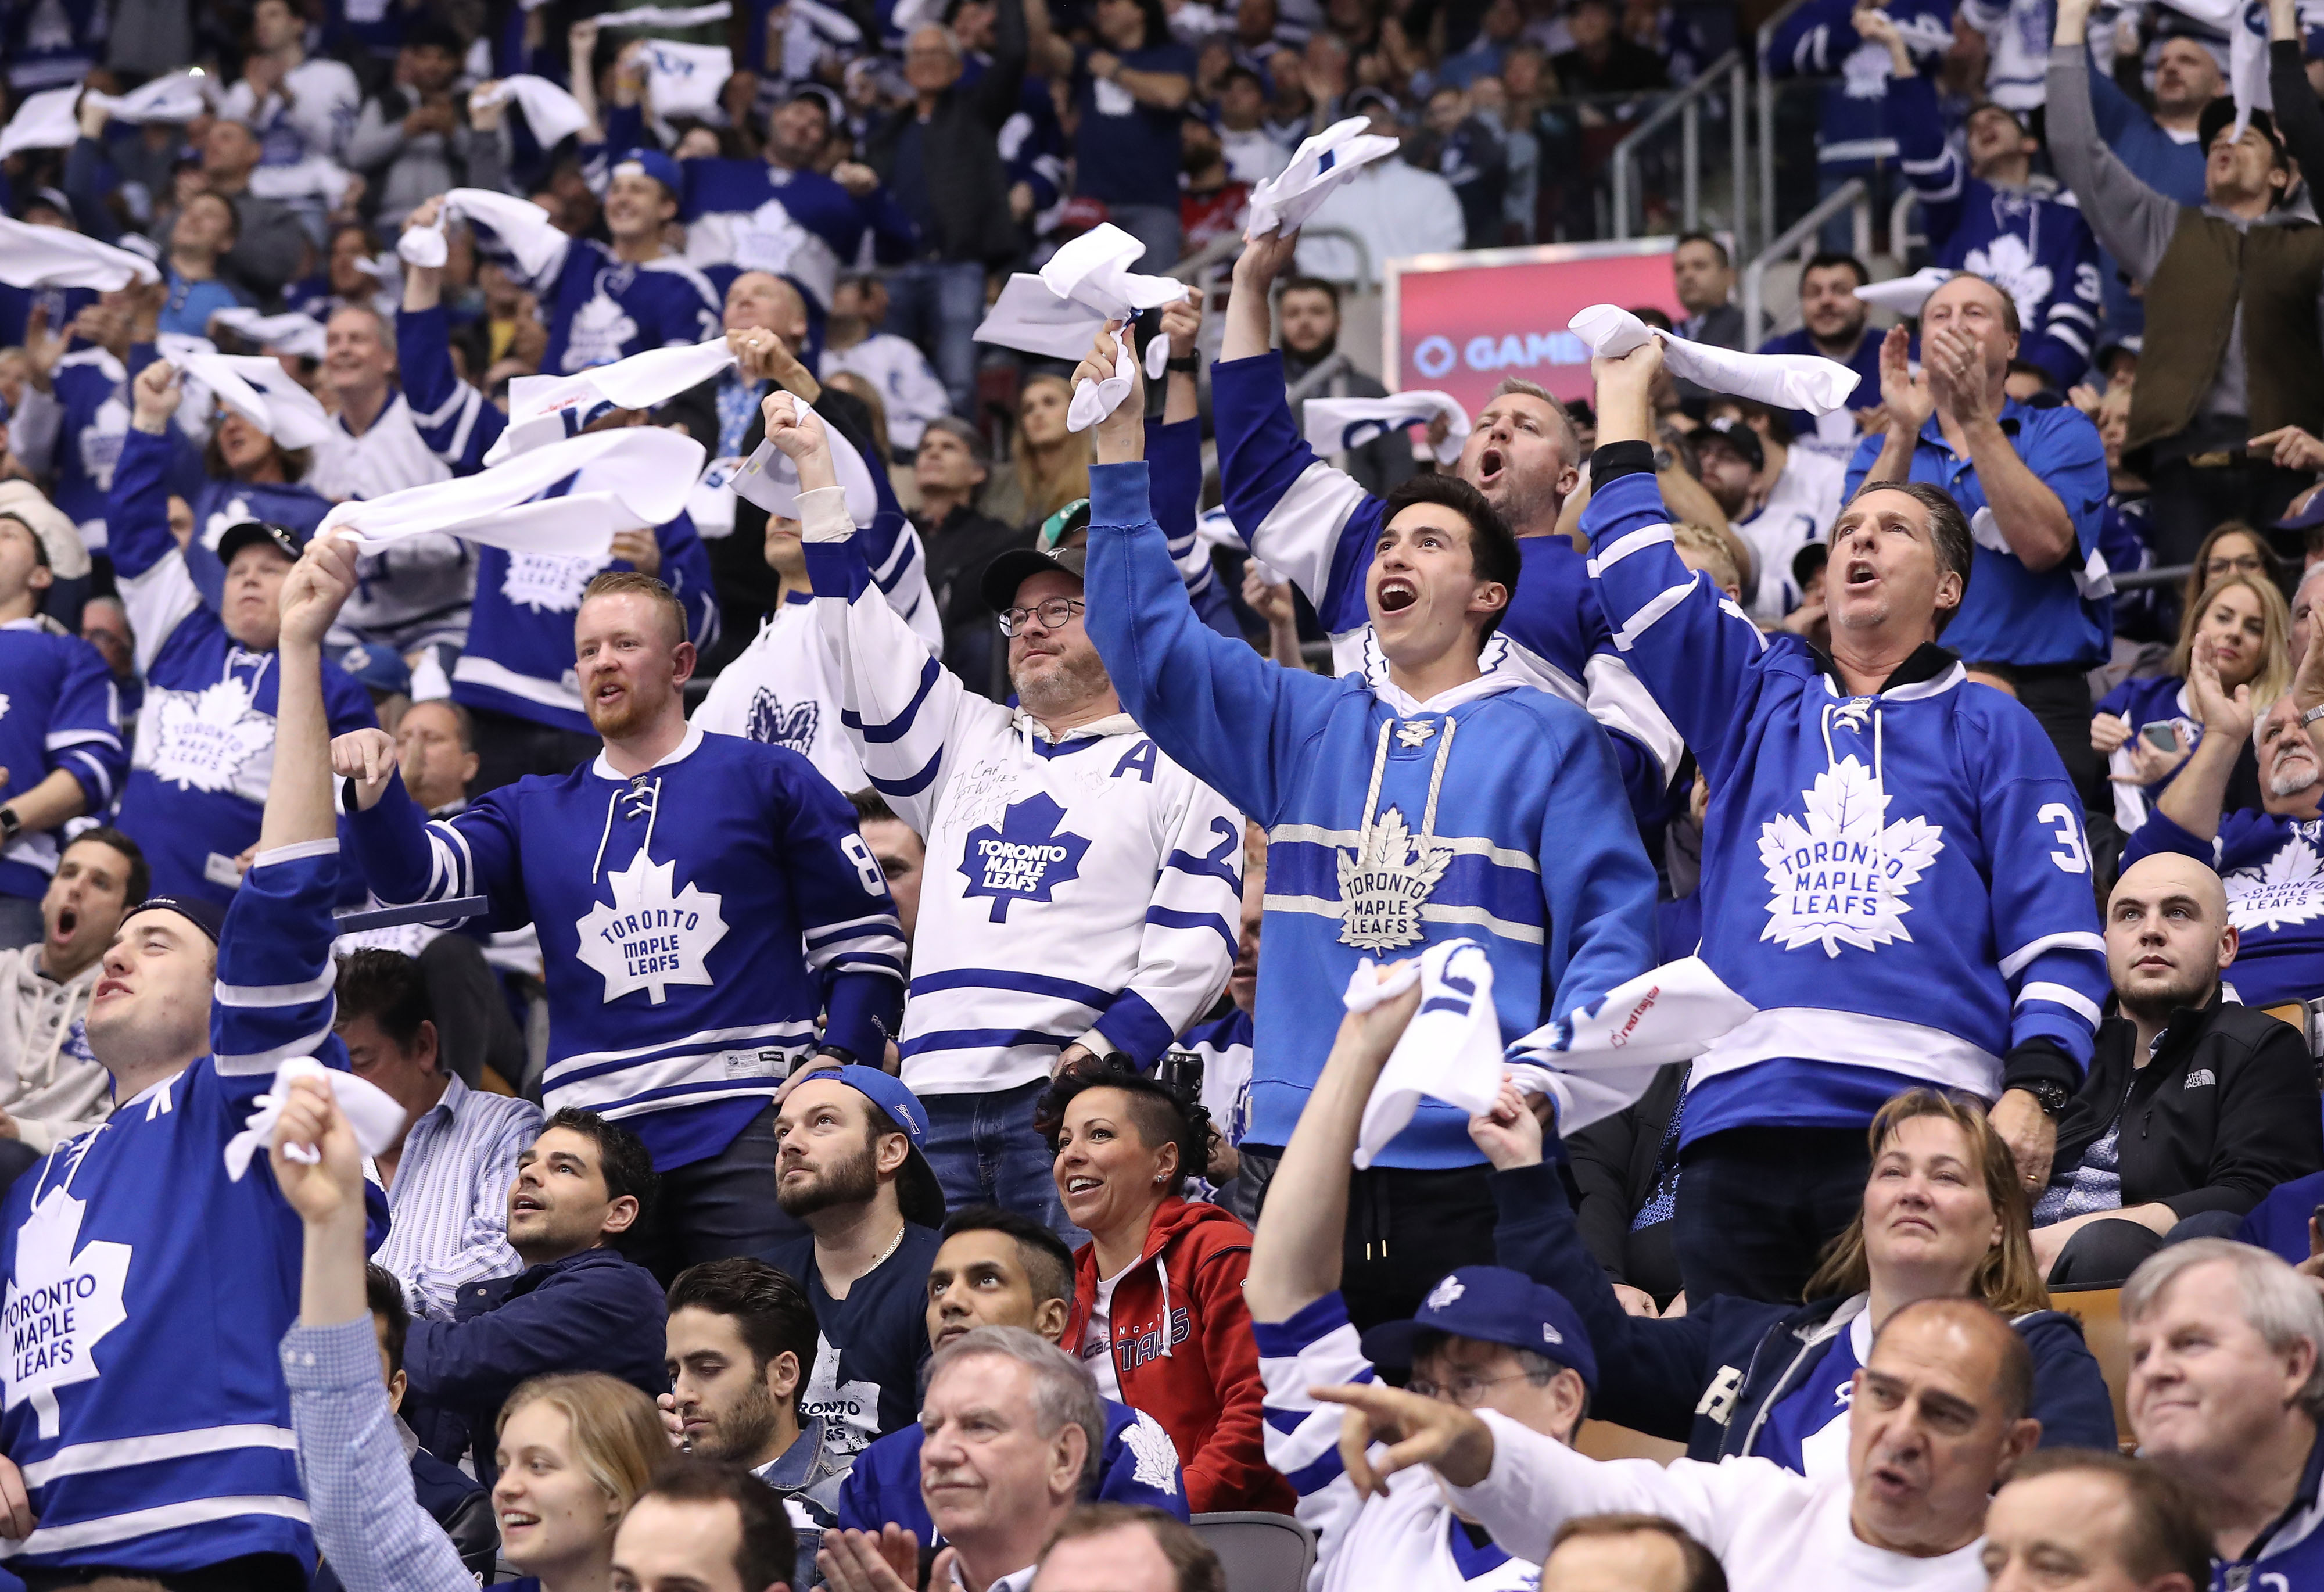 10028521-nhl-stanley-cup-playoffs-washington-capitals-at-toronto-maple-leafs